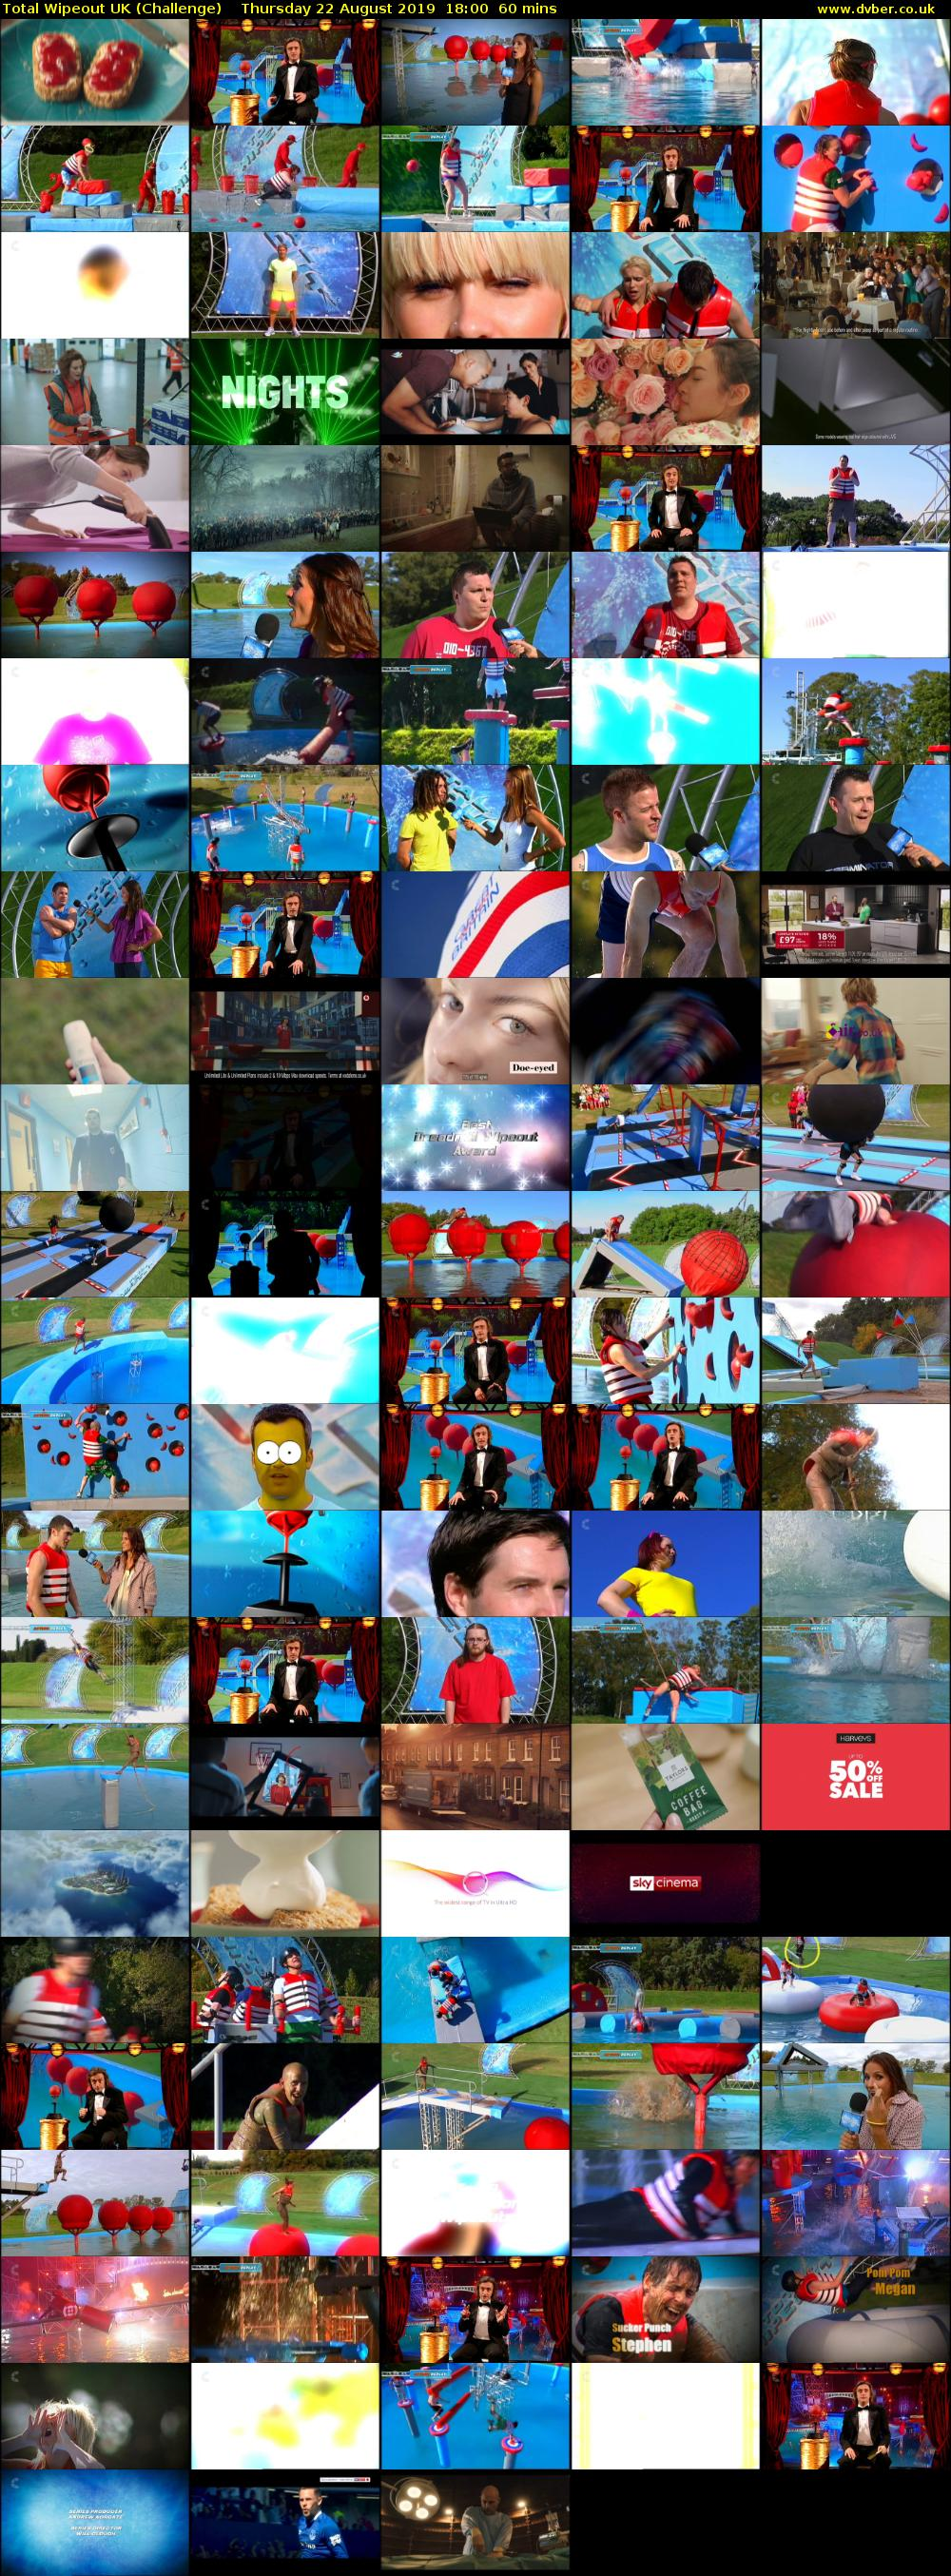 Total Wipeout UK (Challenge) Thursday 22 August 2019 18:00 - 19:00